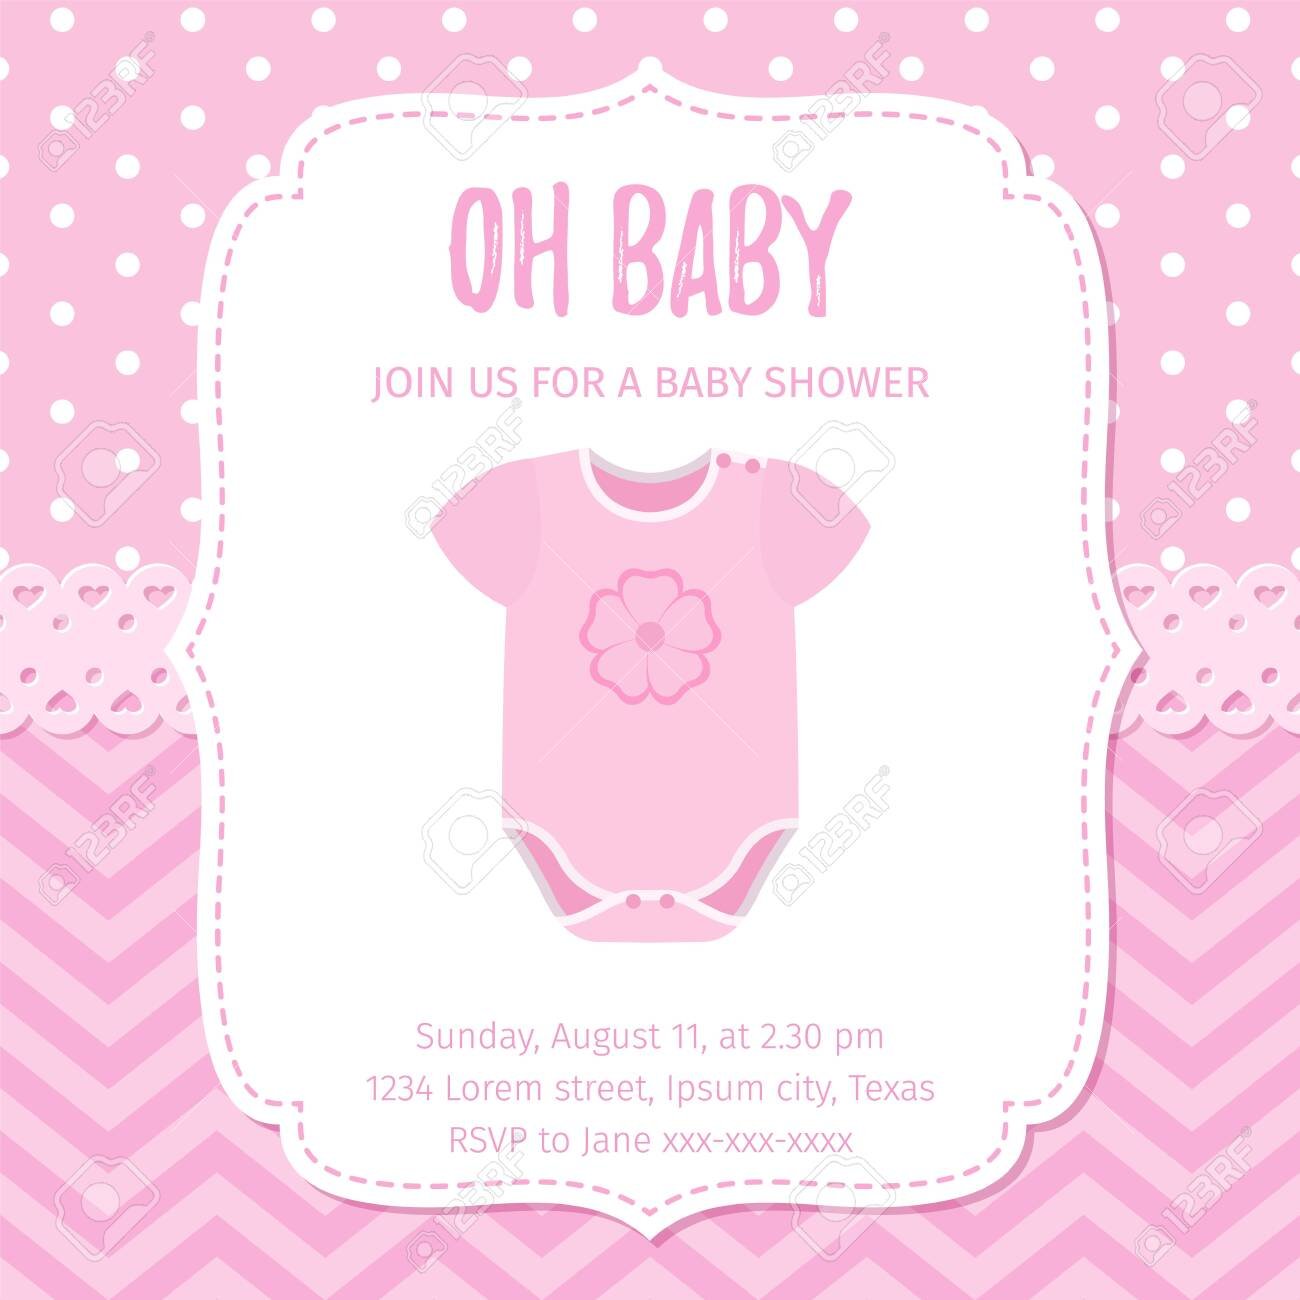 Baby Shower Invitation Vector Baby Girl Card Welcome Template Royalty Free Cliparts Vectors And Stock Illustration Image 124442125